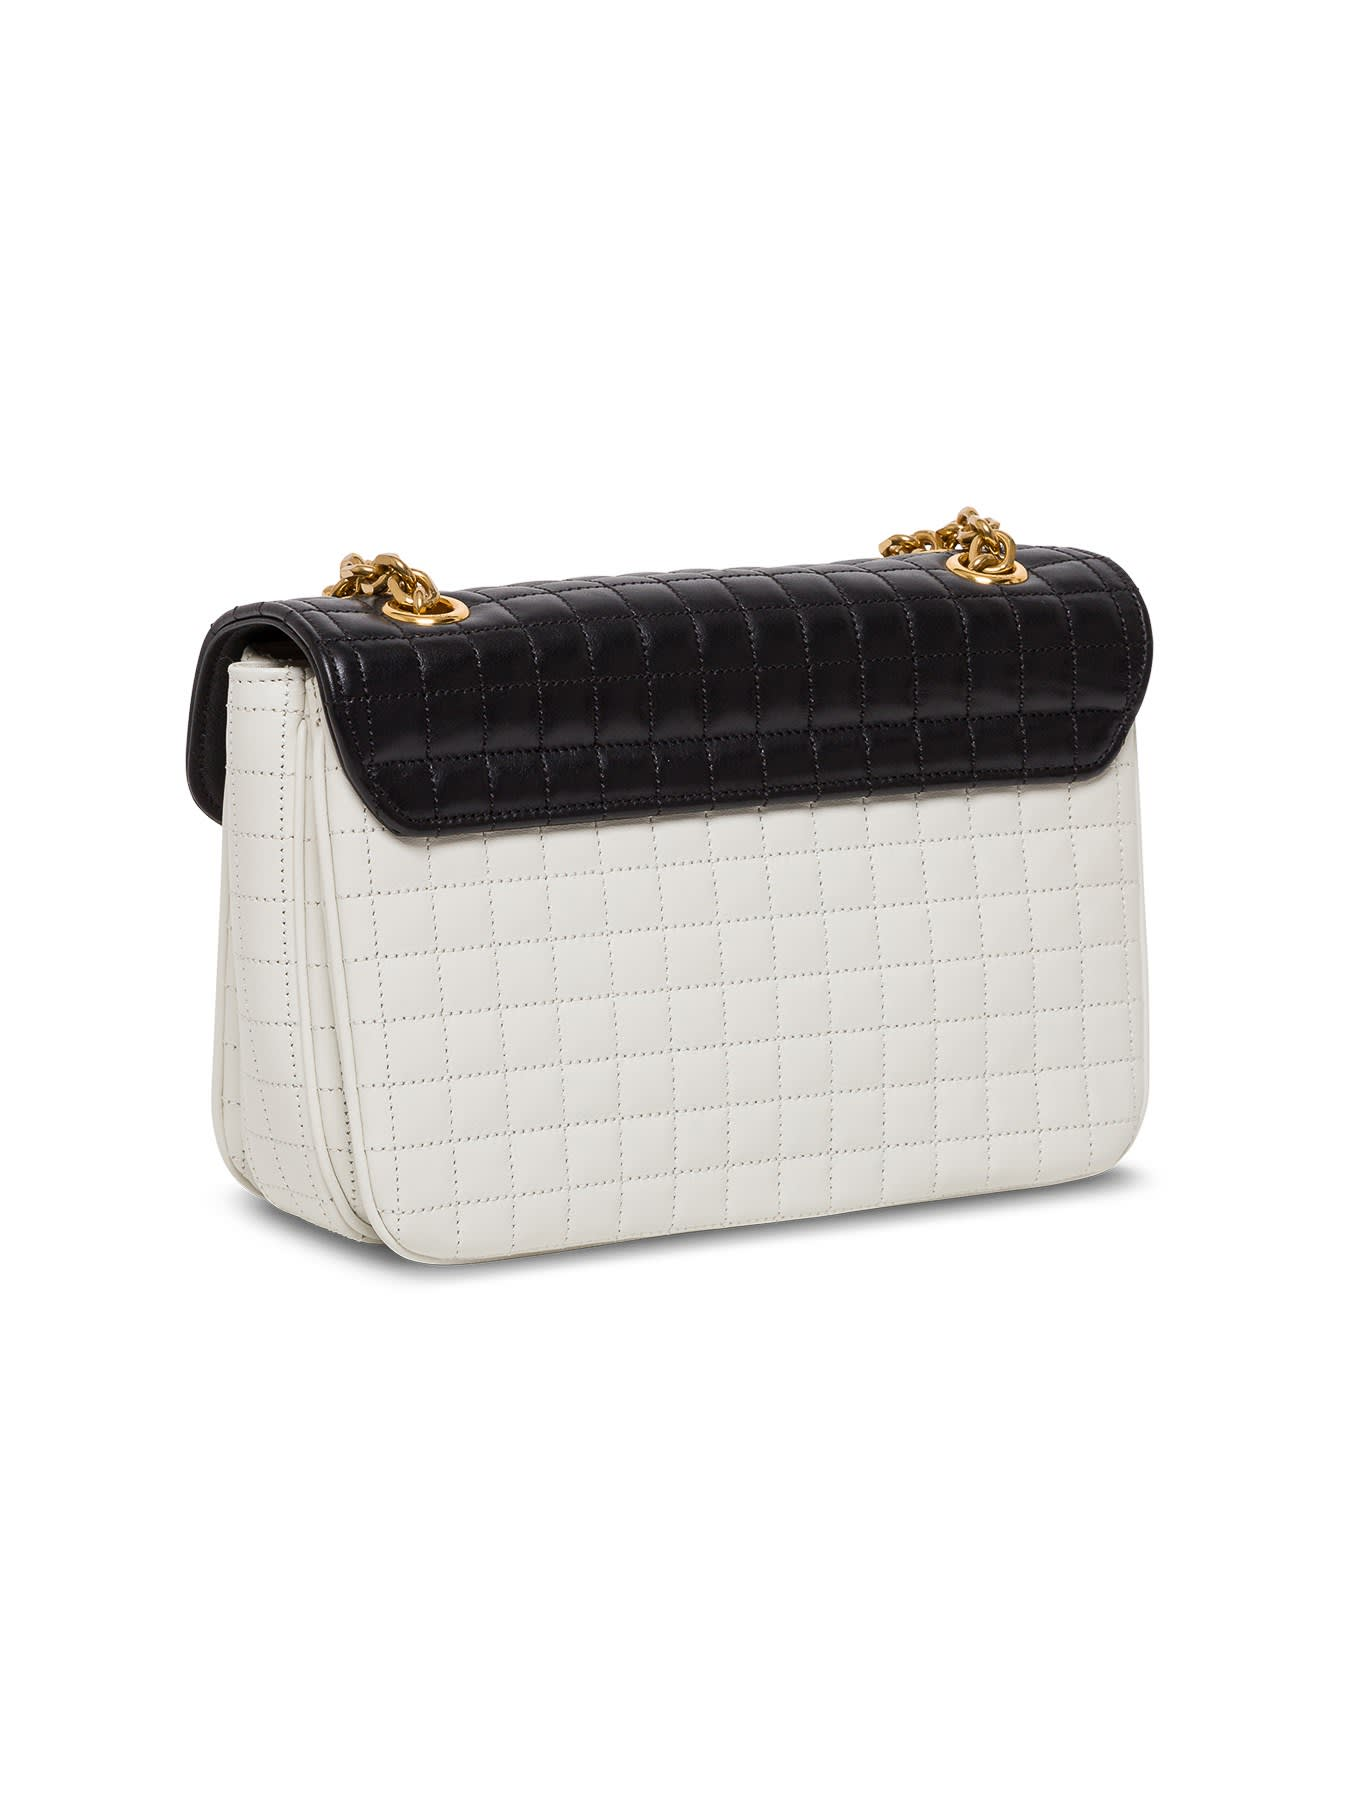 Celine C CROSSBODY BAG IN BICOLOR QUILTED LEATHER